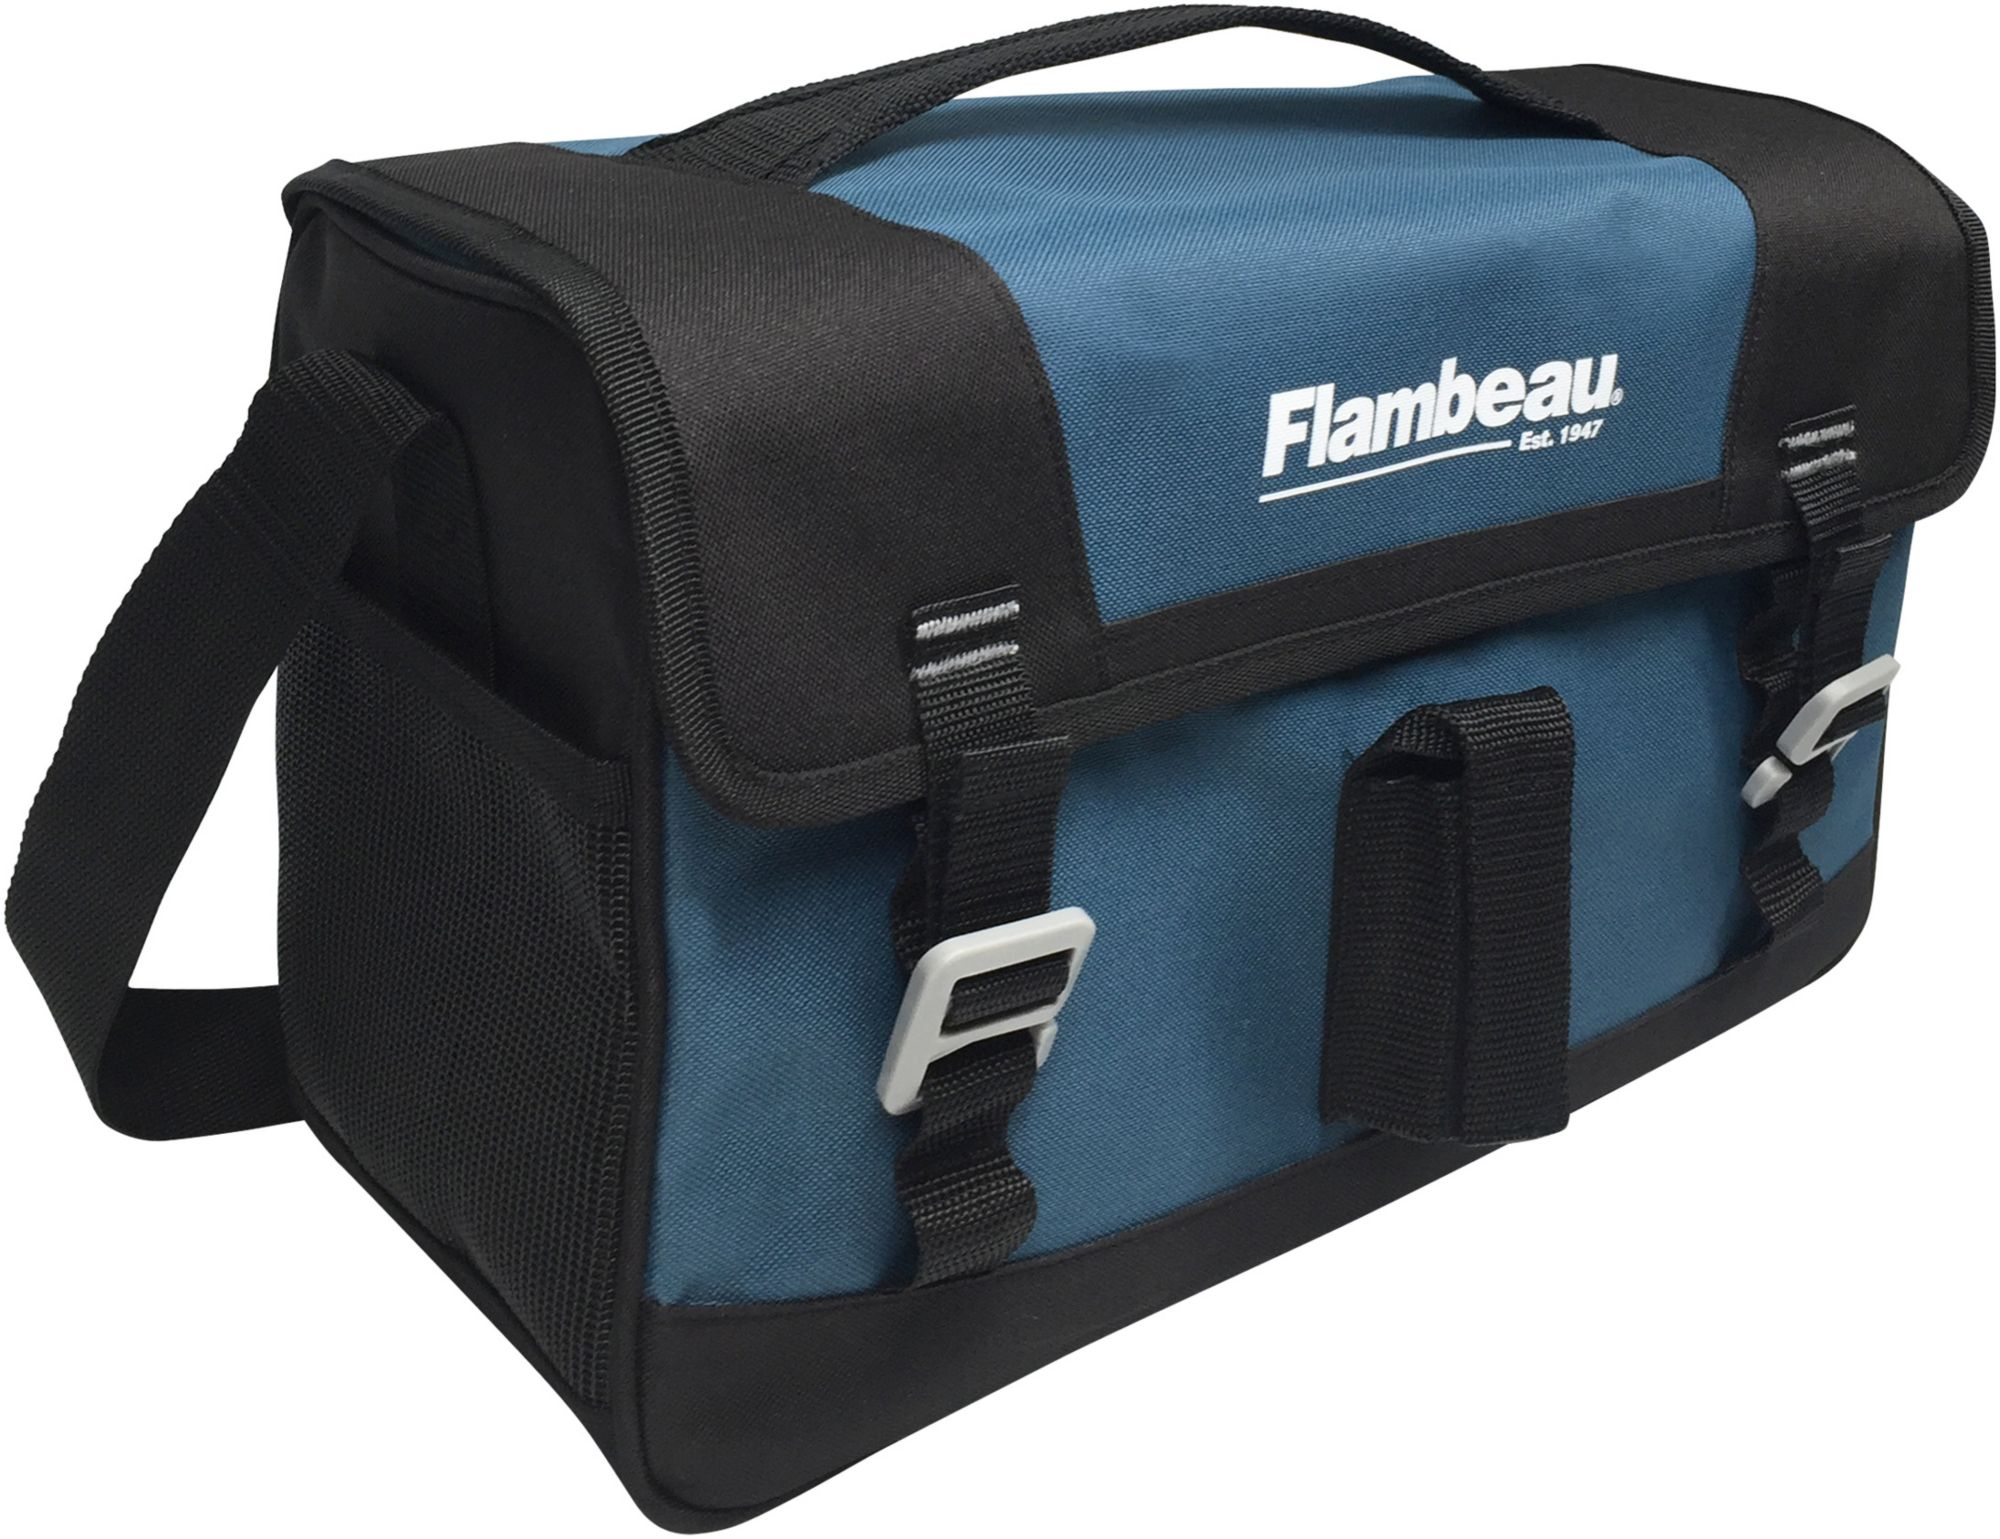 Flambeau Adventurer Large Tackle Bag, Size: One size